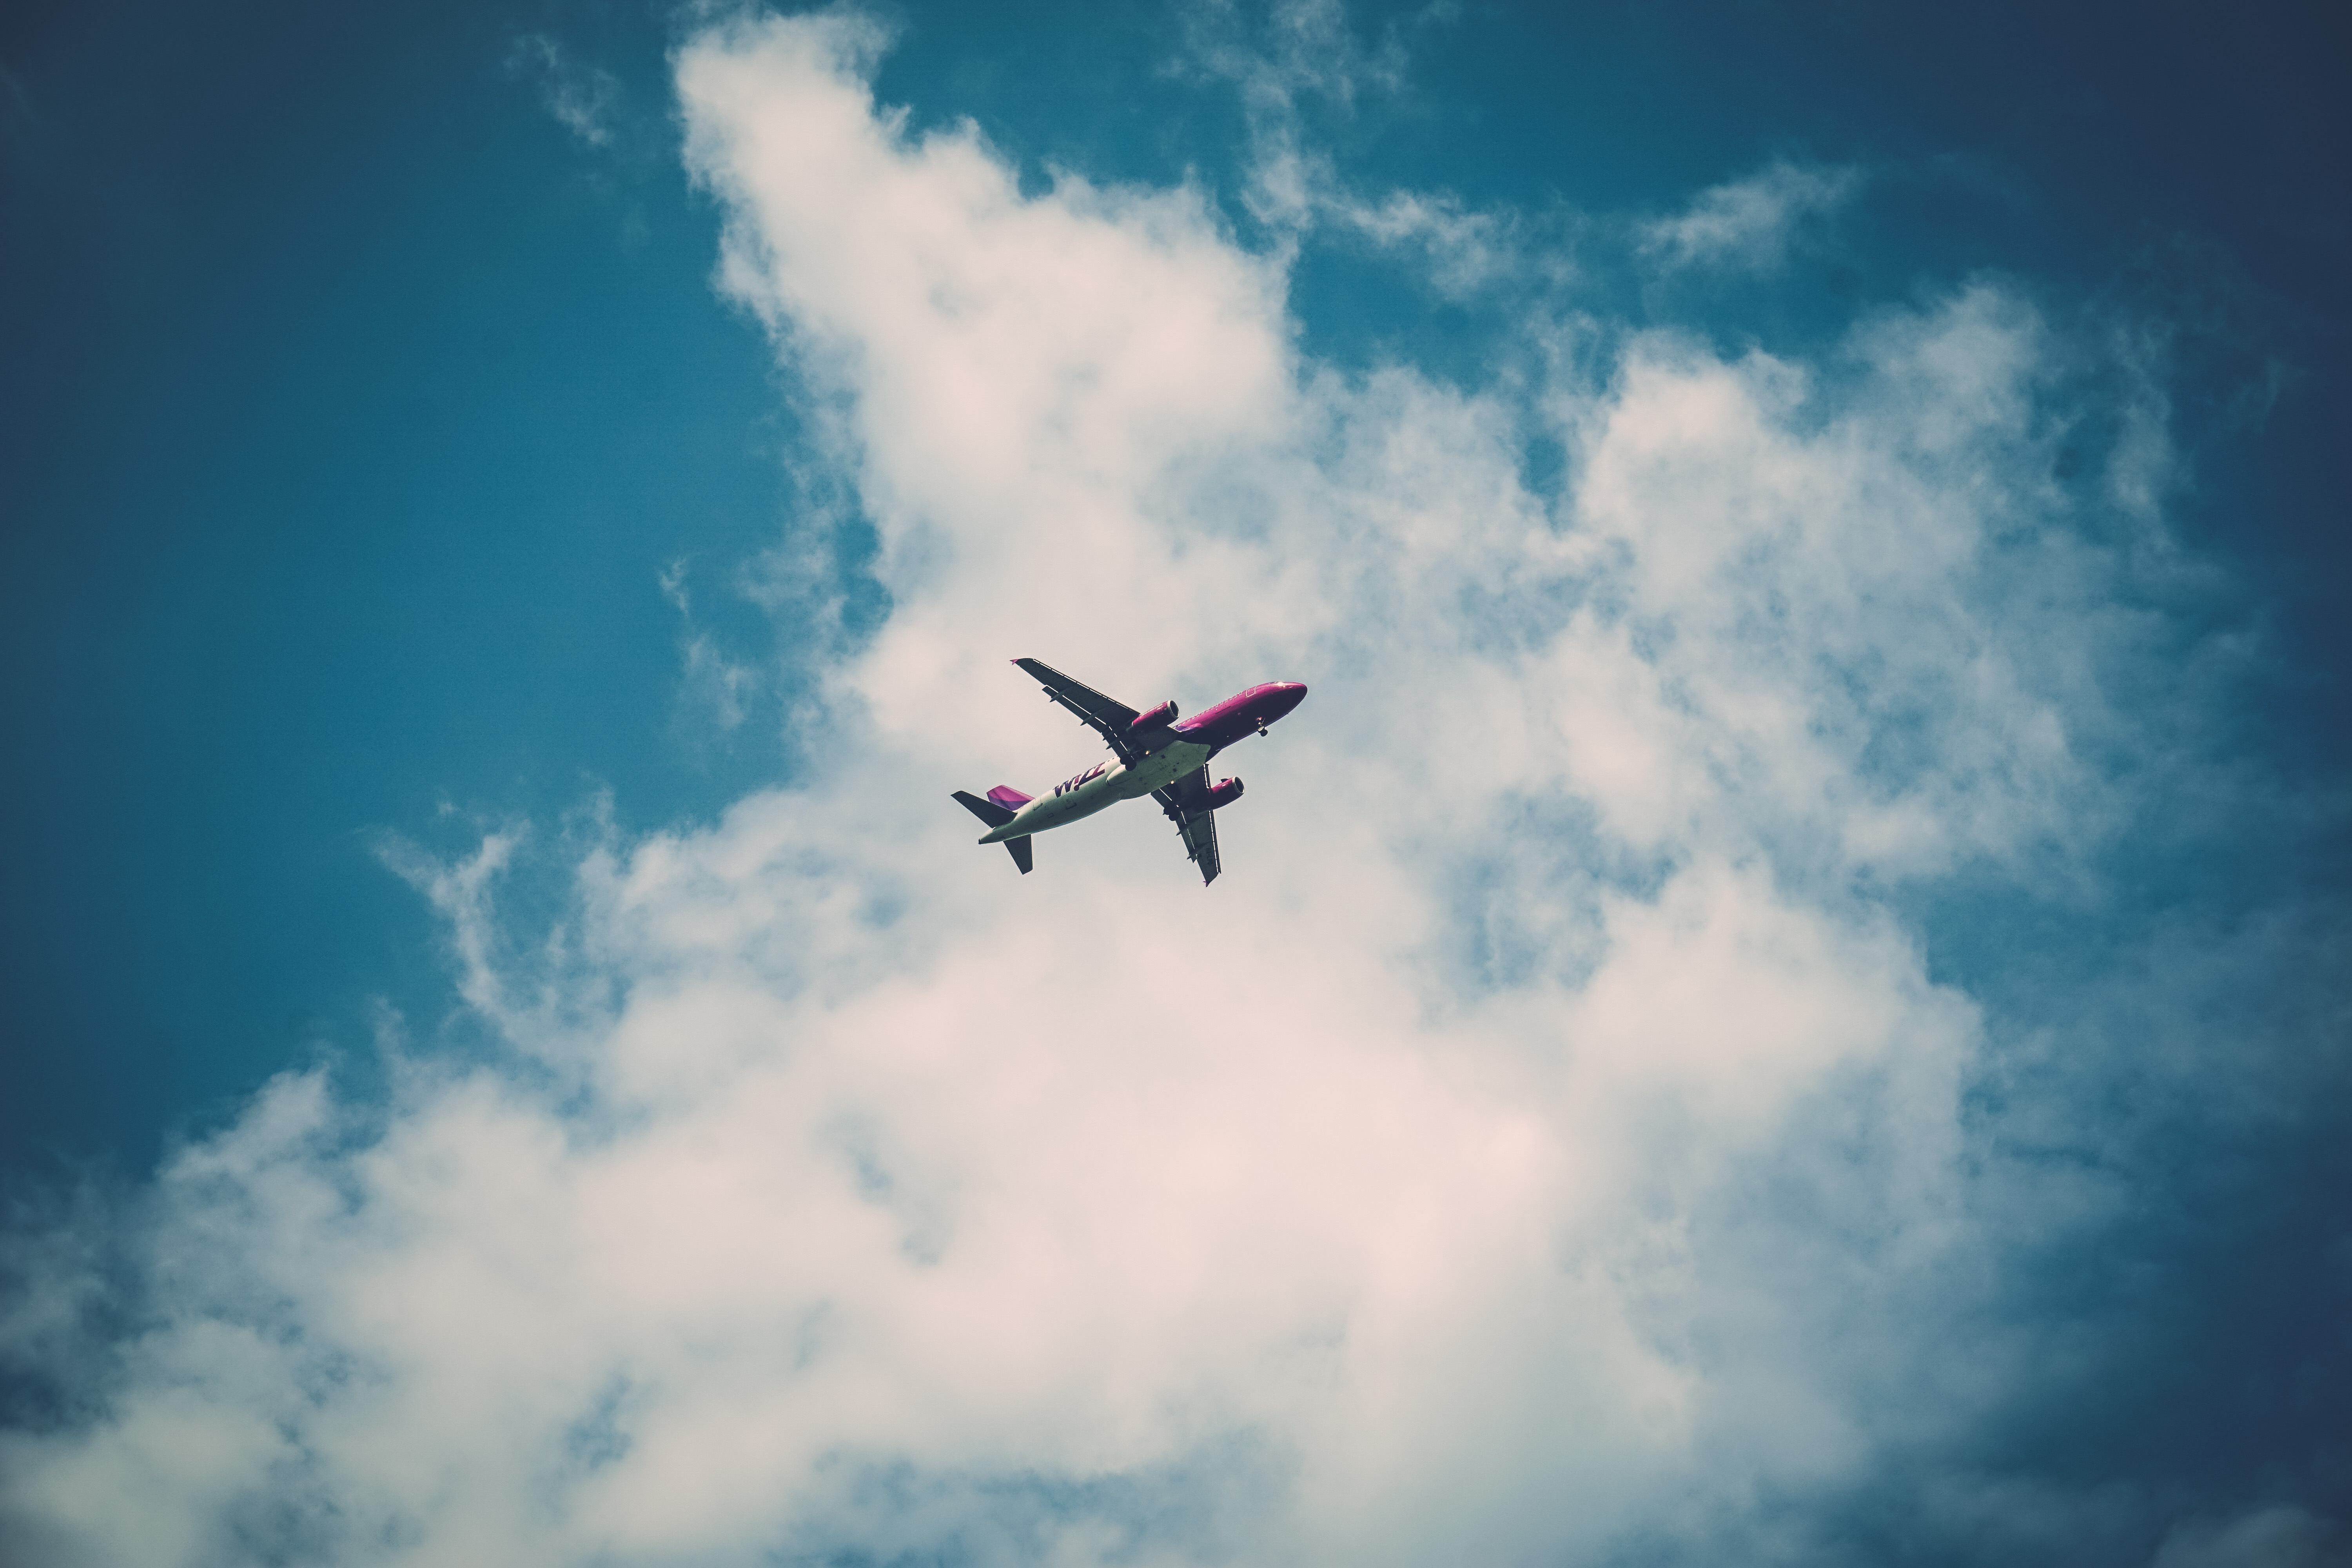 worksheet Plane Pictures free stock photos of plane pexels photo flight sky flying clouds